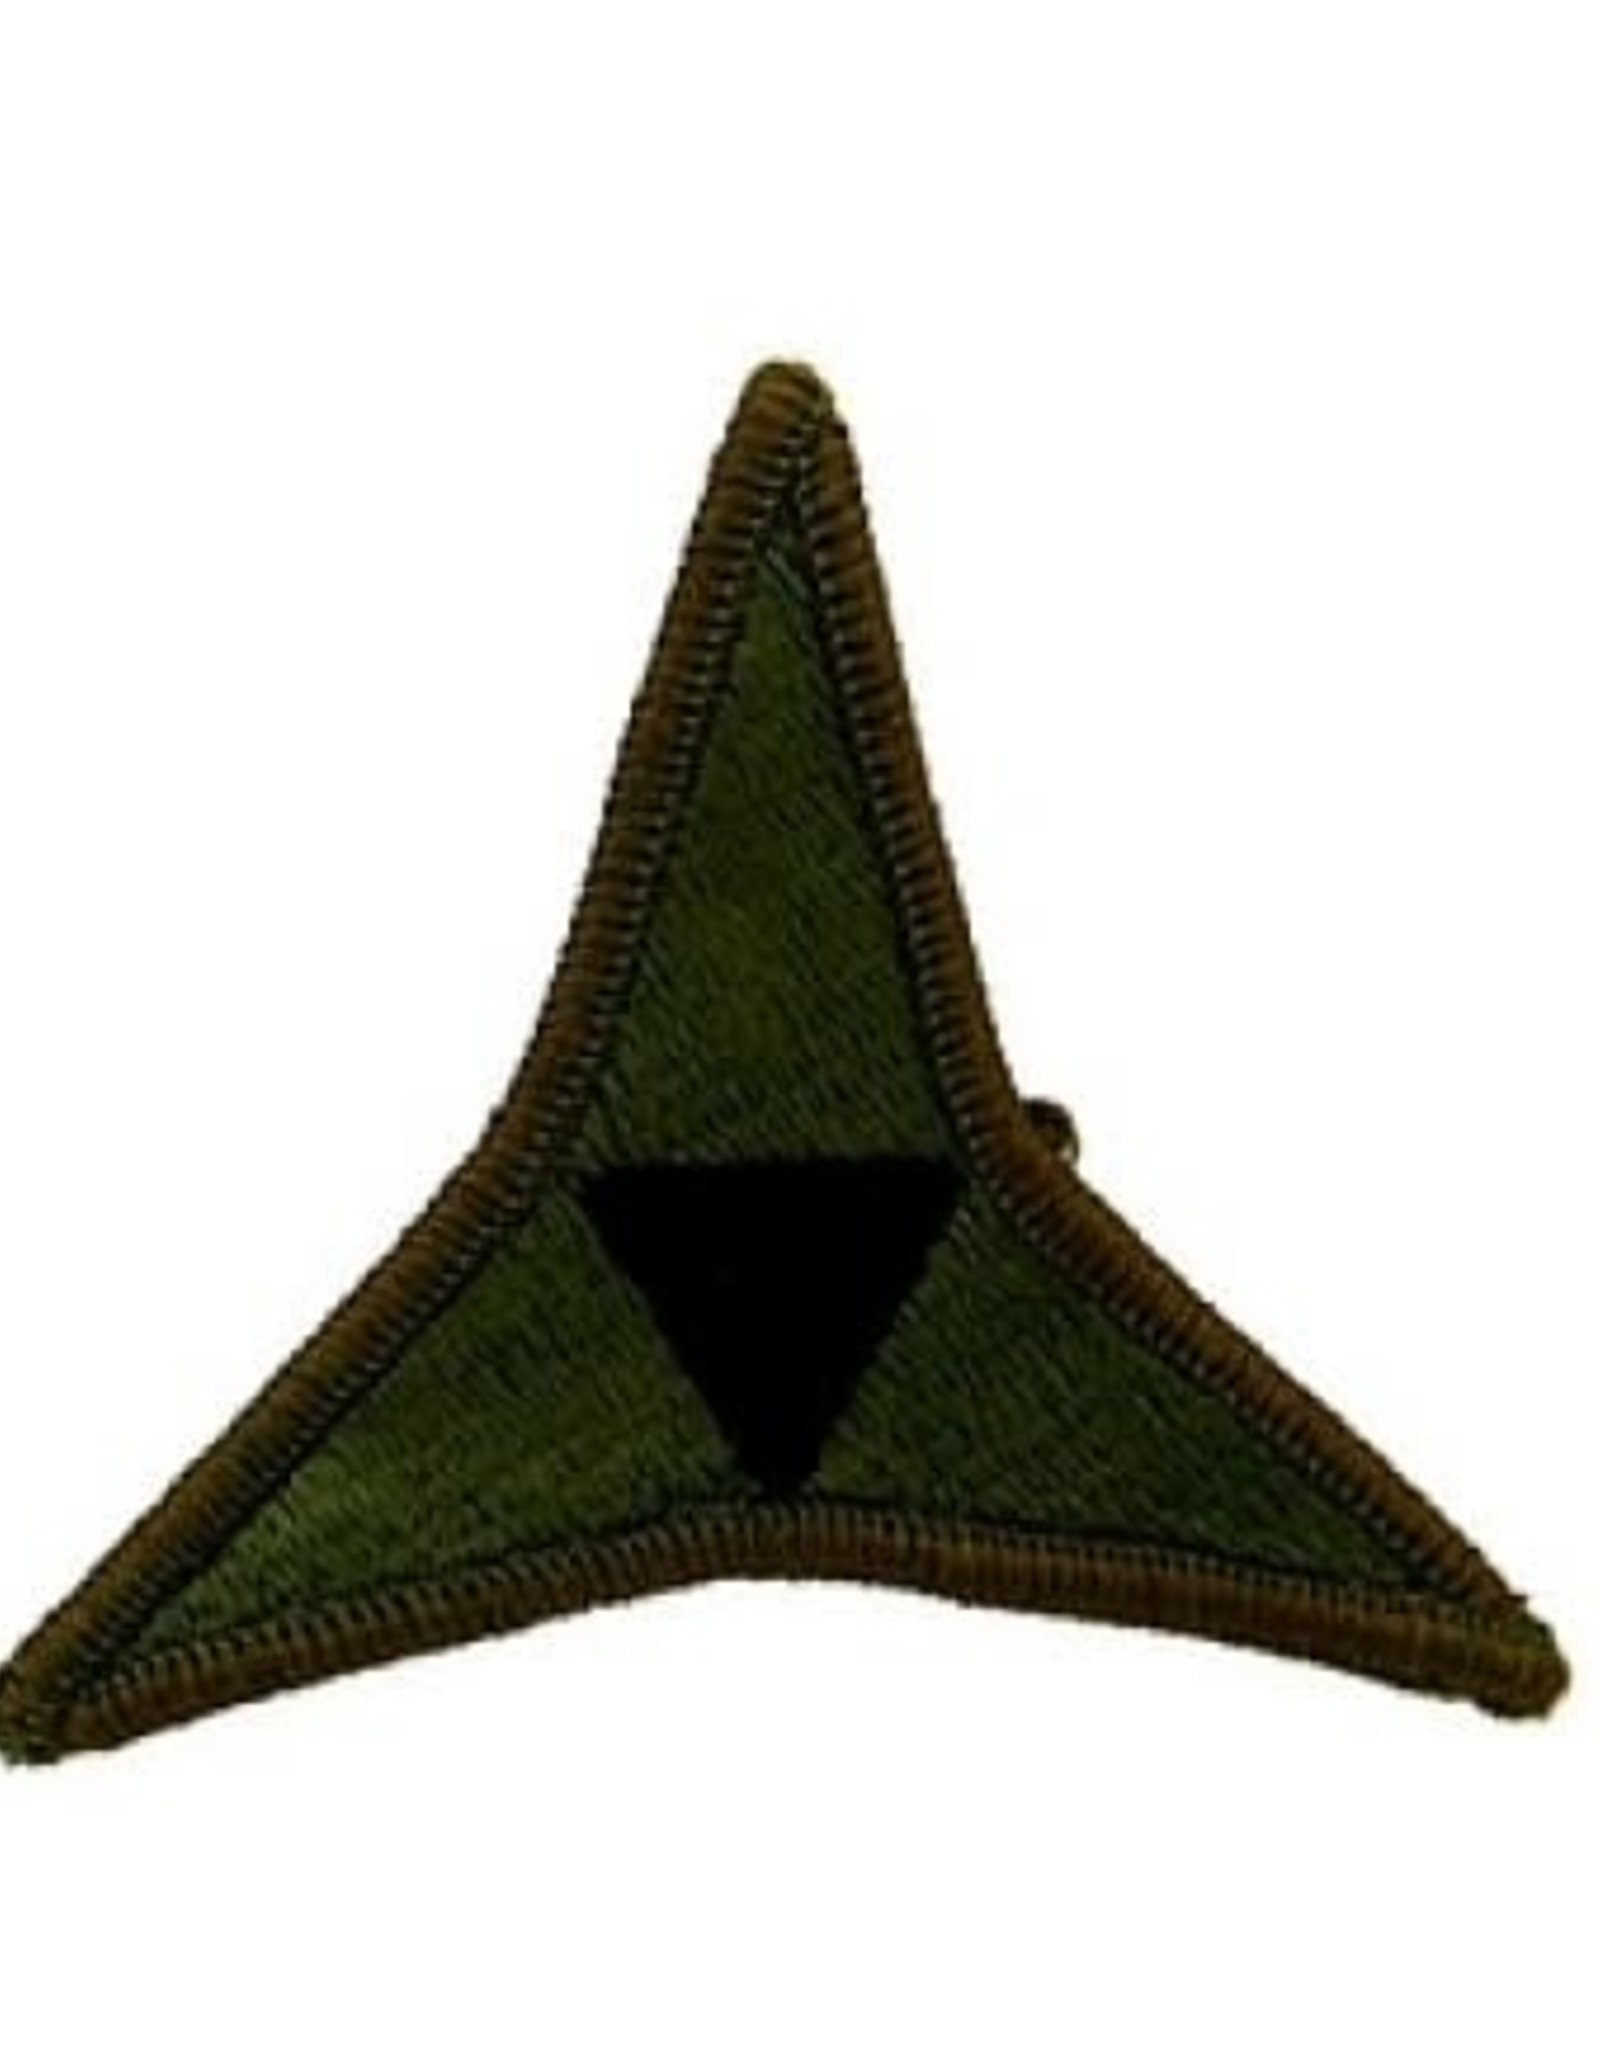 """MidMil Embroidered Subdued Army 3rd Corps Emblem Patch 3"""" wide x 2.6"""" high Olive Drab"""